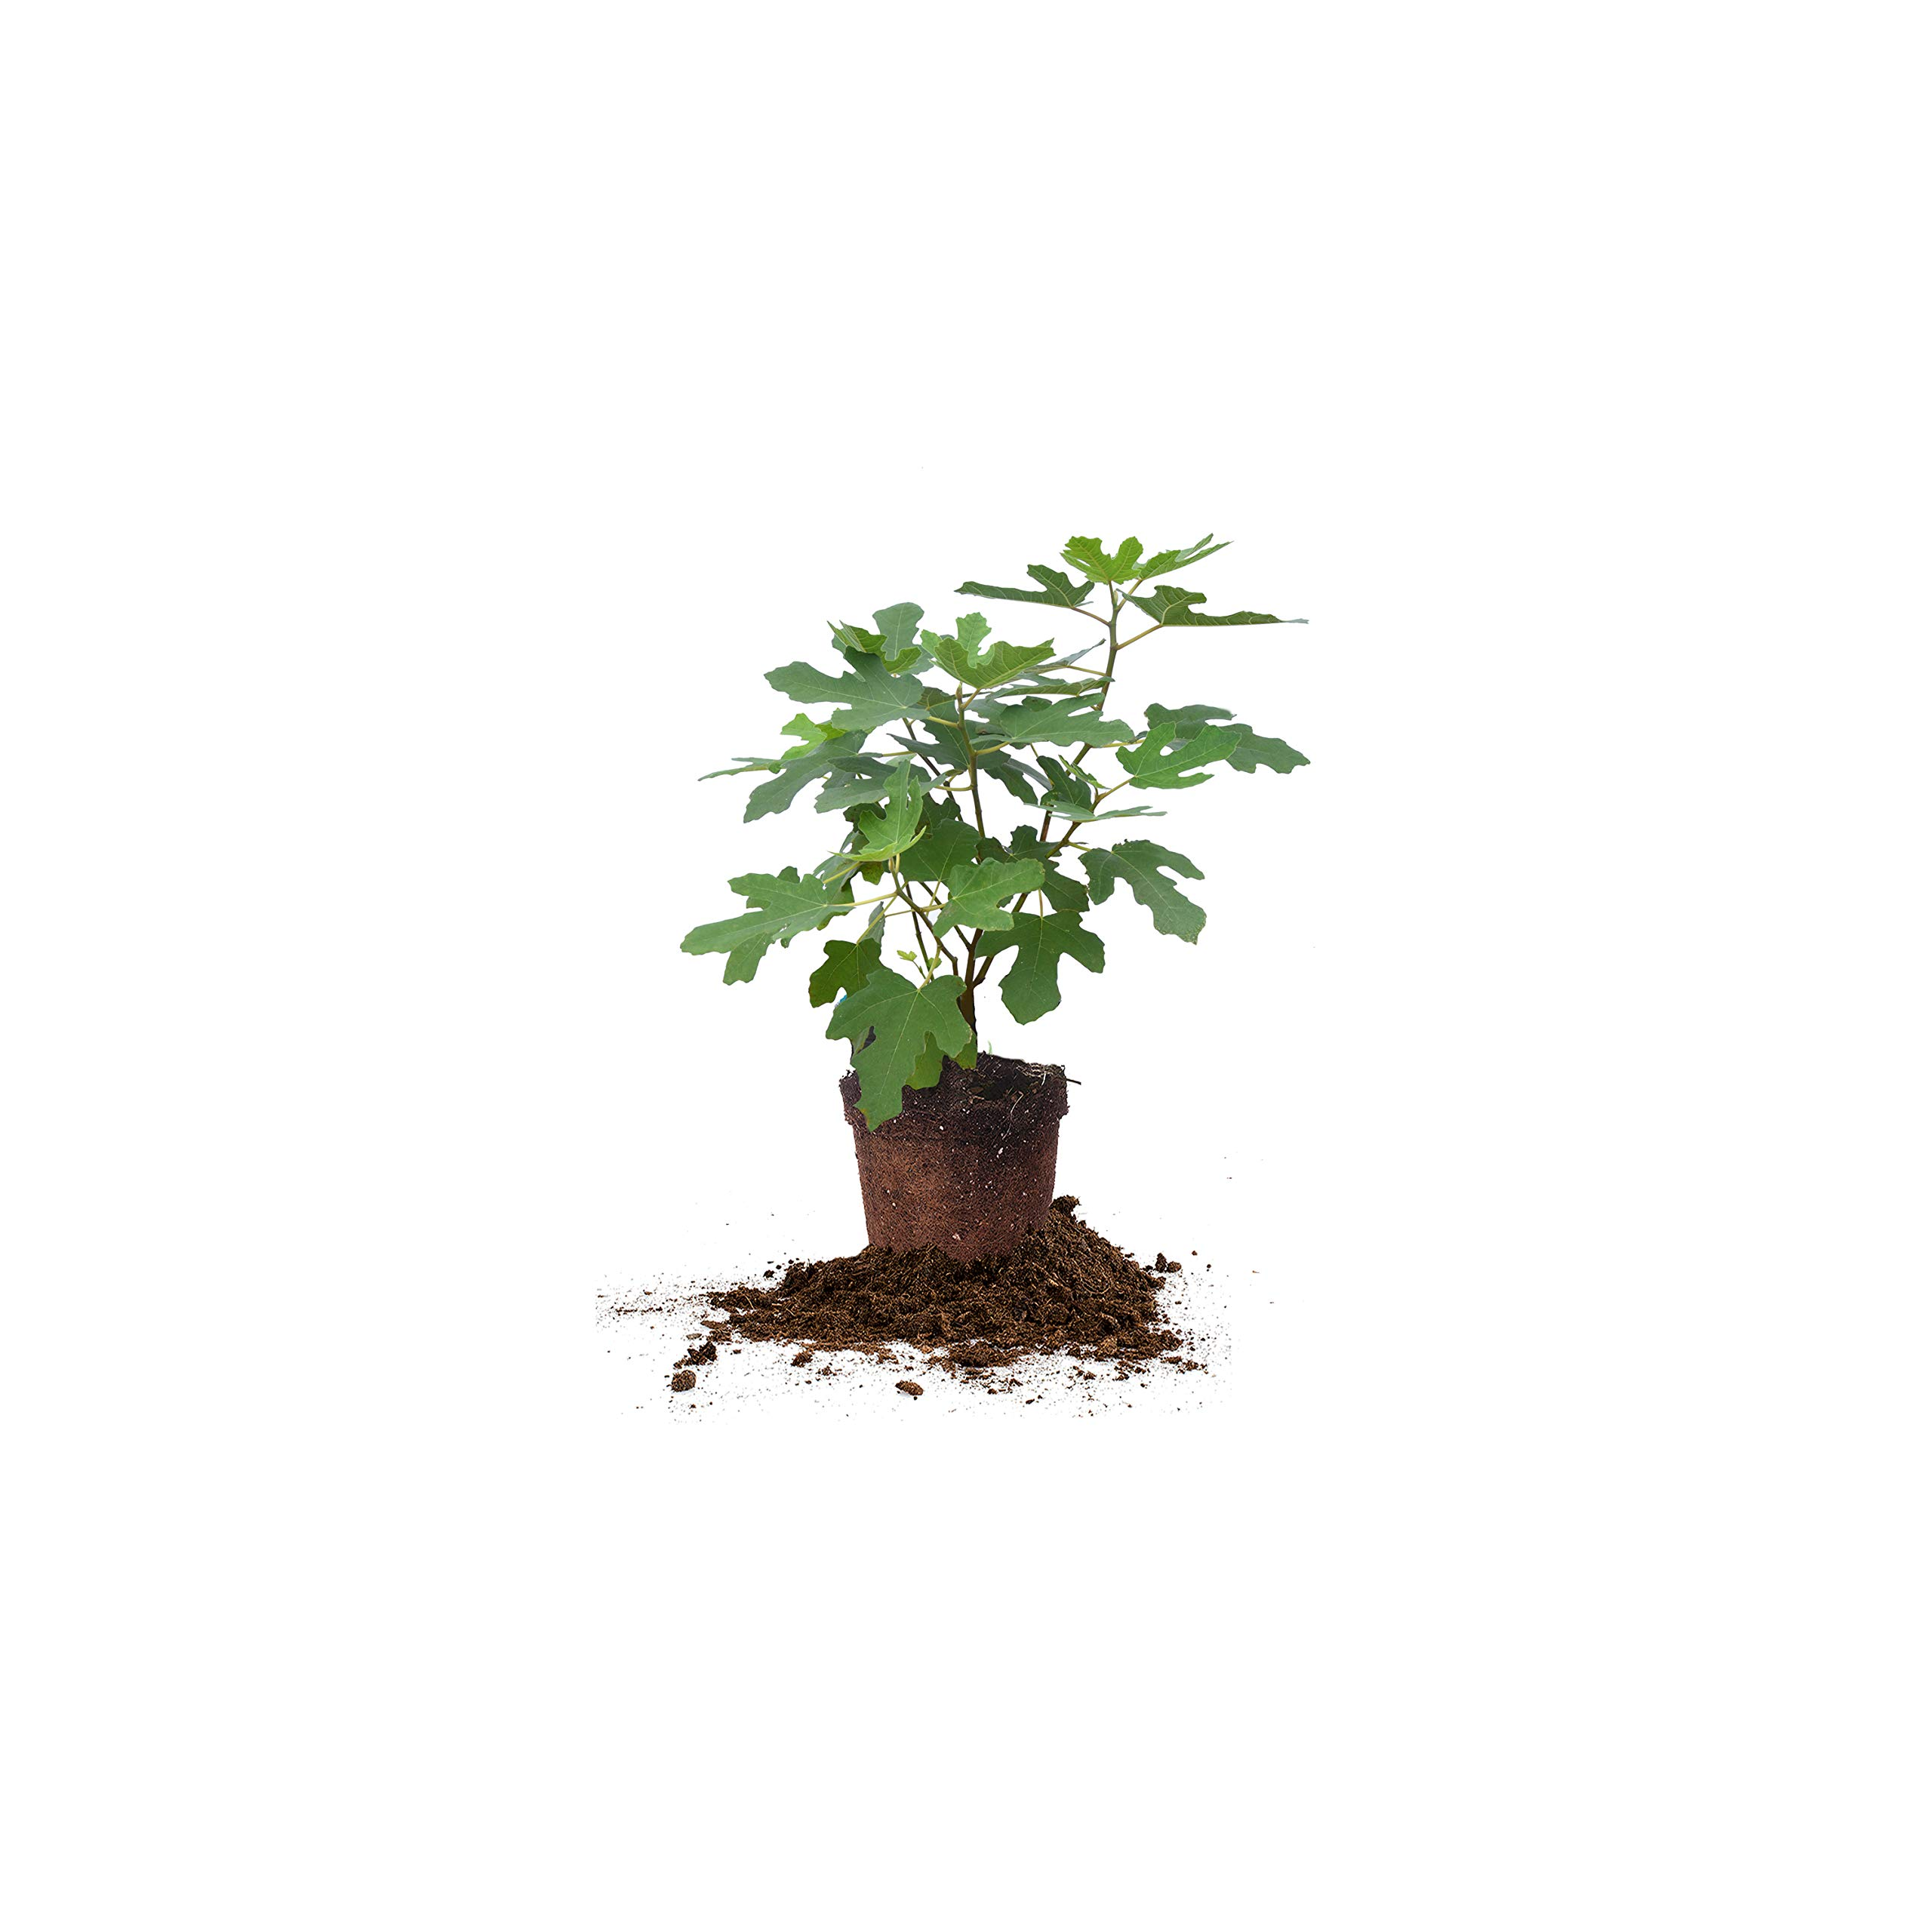 Perfect Plants Chicago Hardy Fig Tree Live Plant, 1 Gallon, Includes Care Guide by PERFECT PLANTS